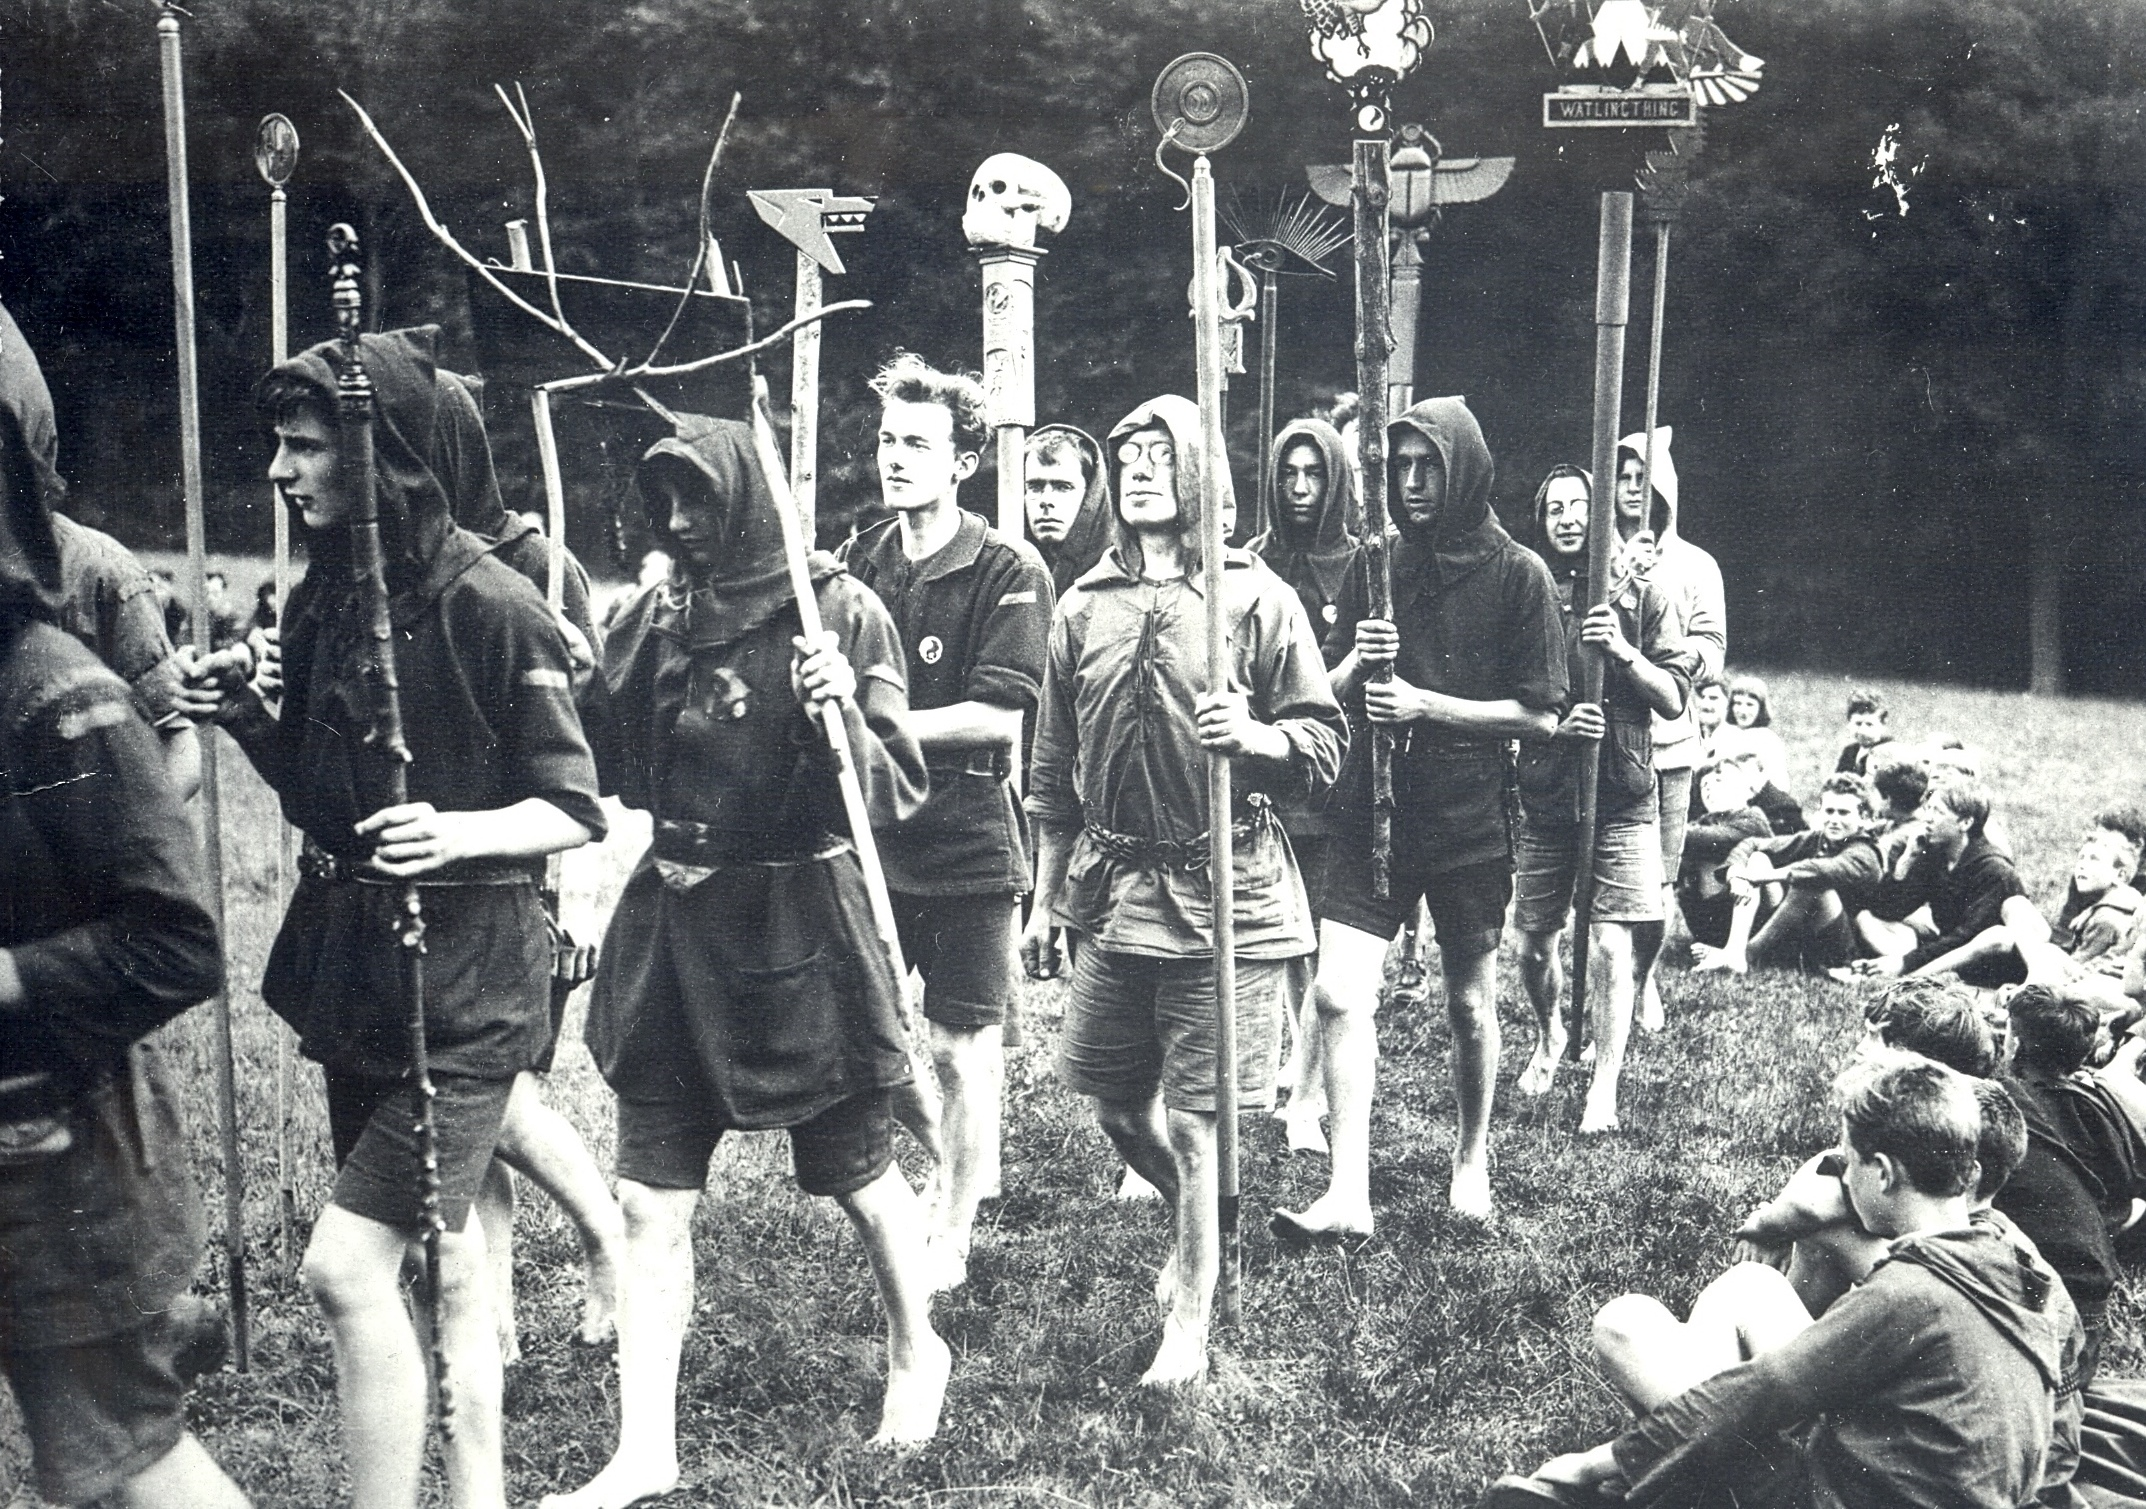 Image-5-Kibbo-Kift-Kindred-men-and-boys-on-camp-parade-with-totems-1925